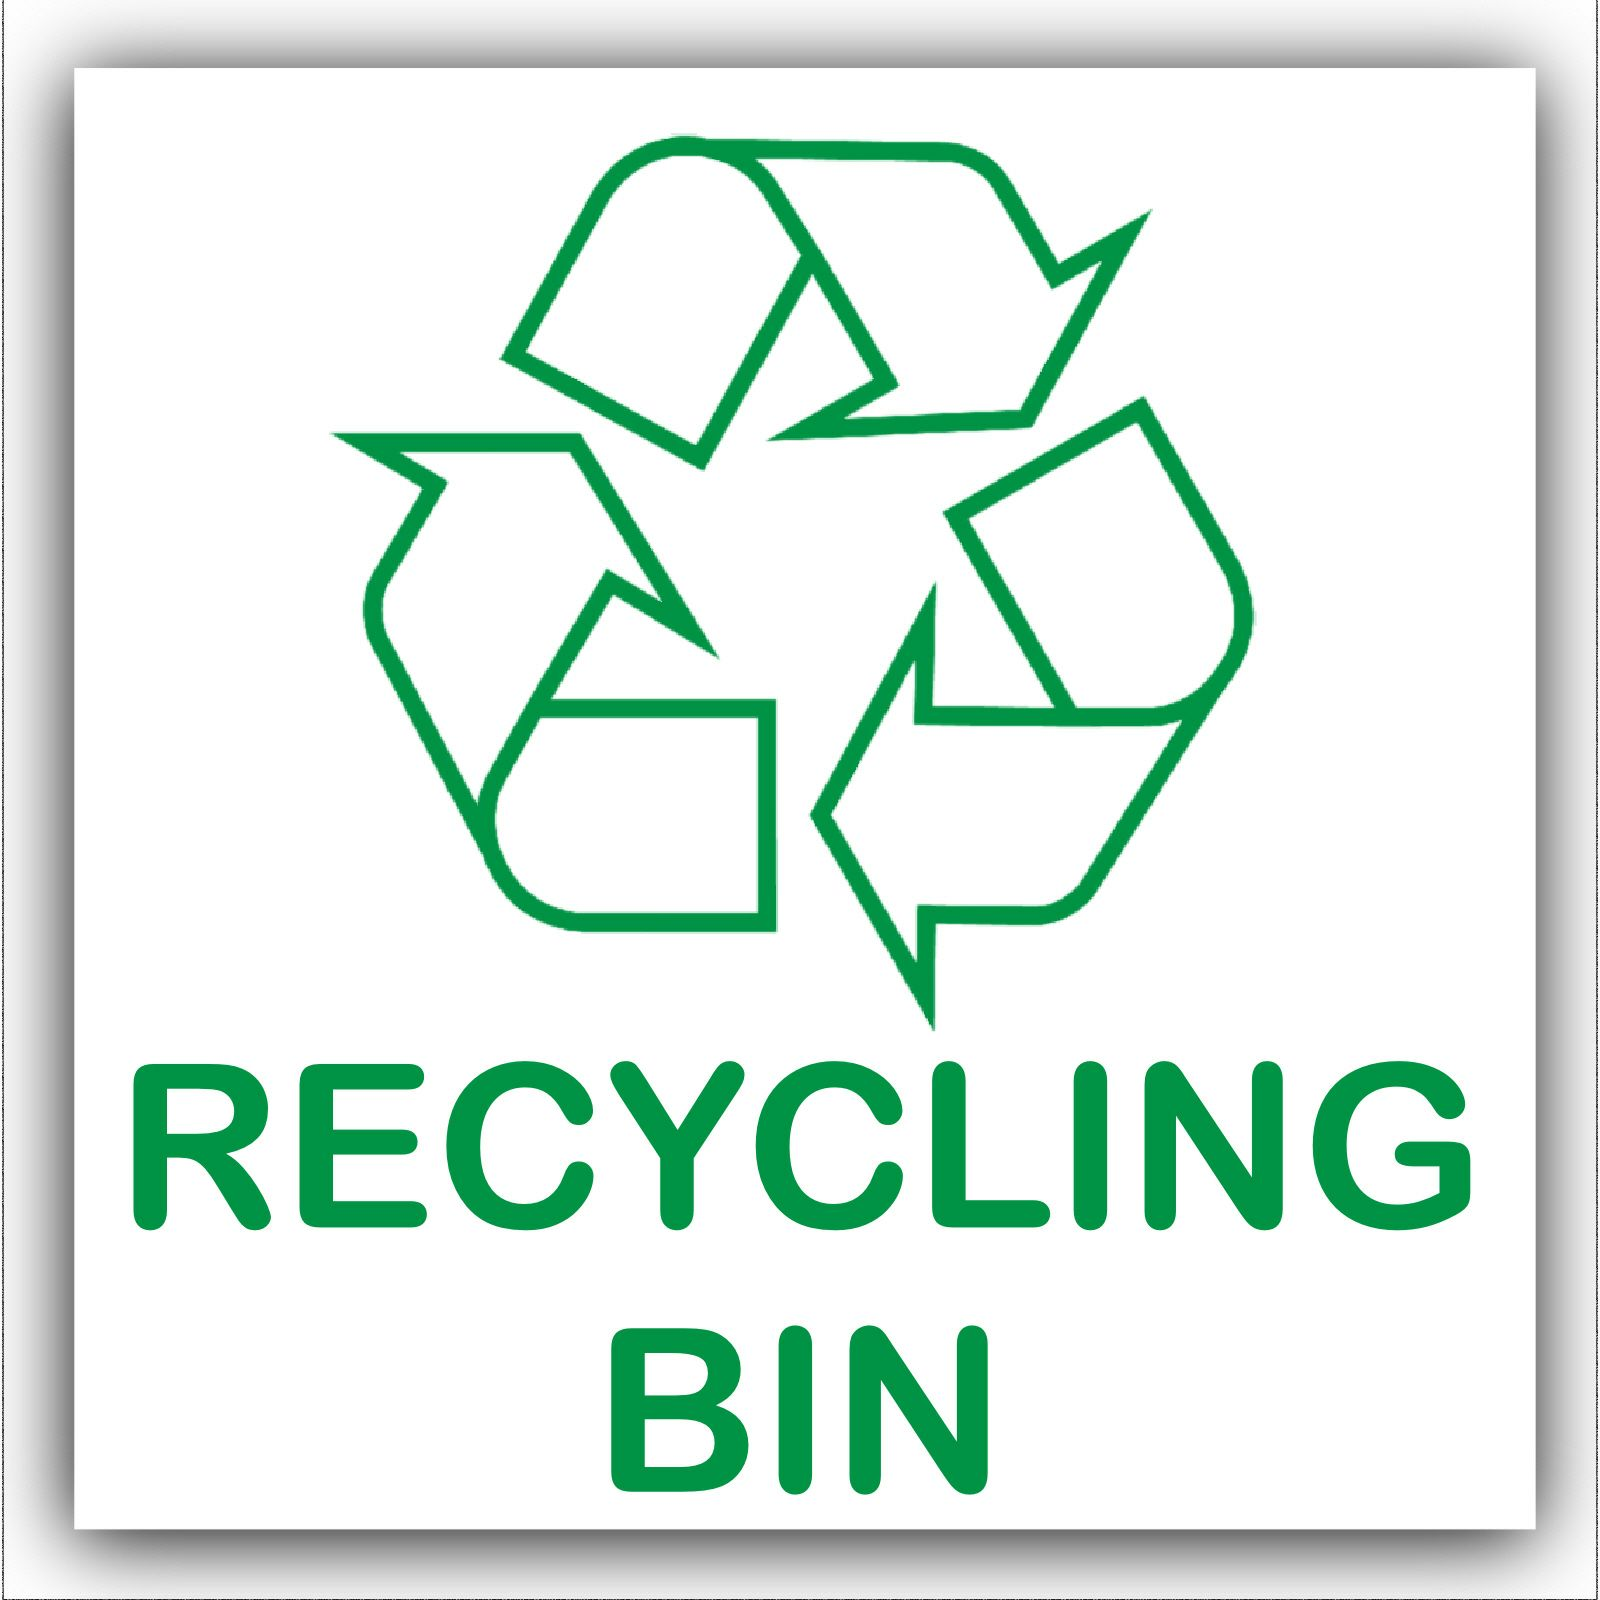 1 x Recycling Bin Self Adhesive Sticker-Recycle Logo Sign ...